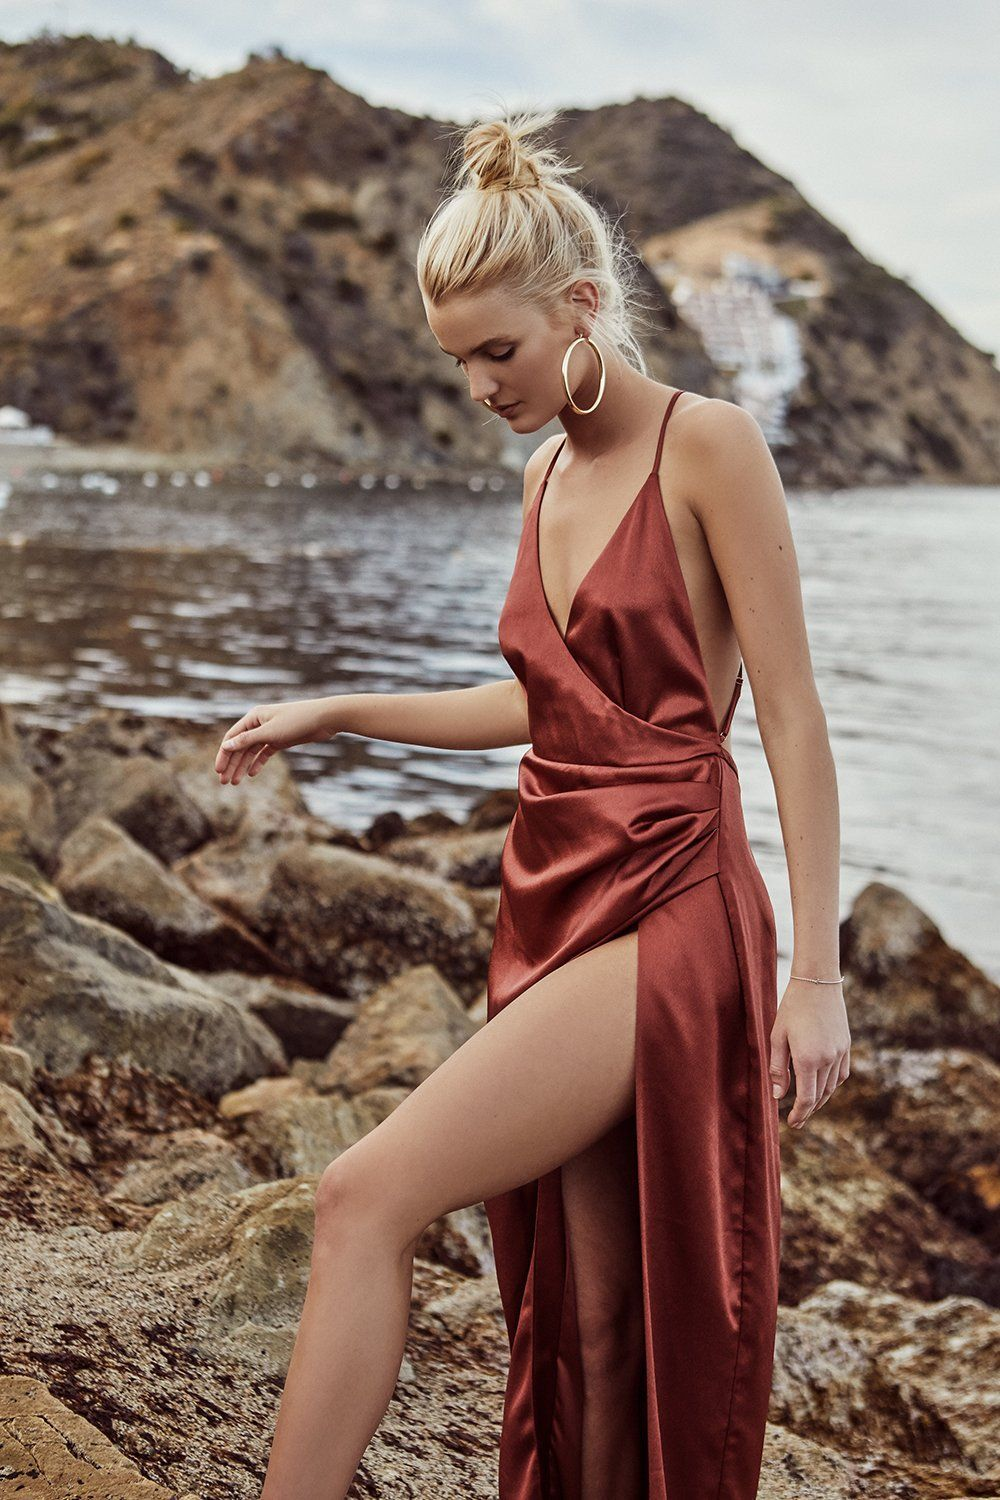 Catalina X Helen My Blog In 2020 Beach Dresses Dresses Island Dress